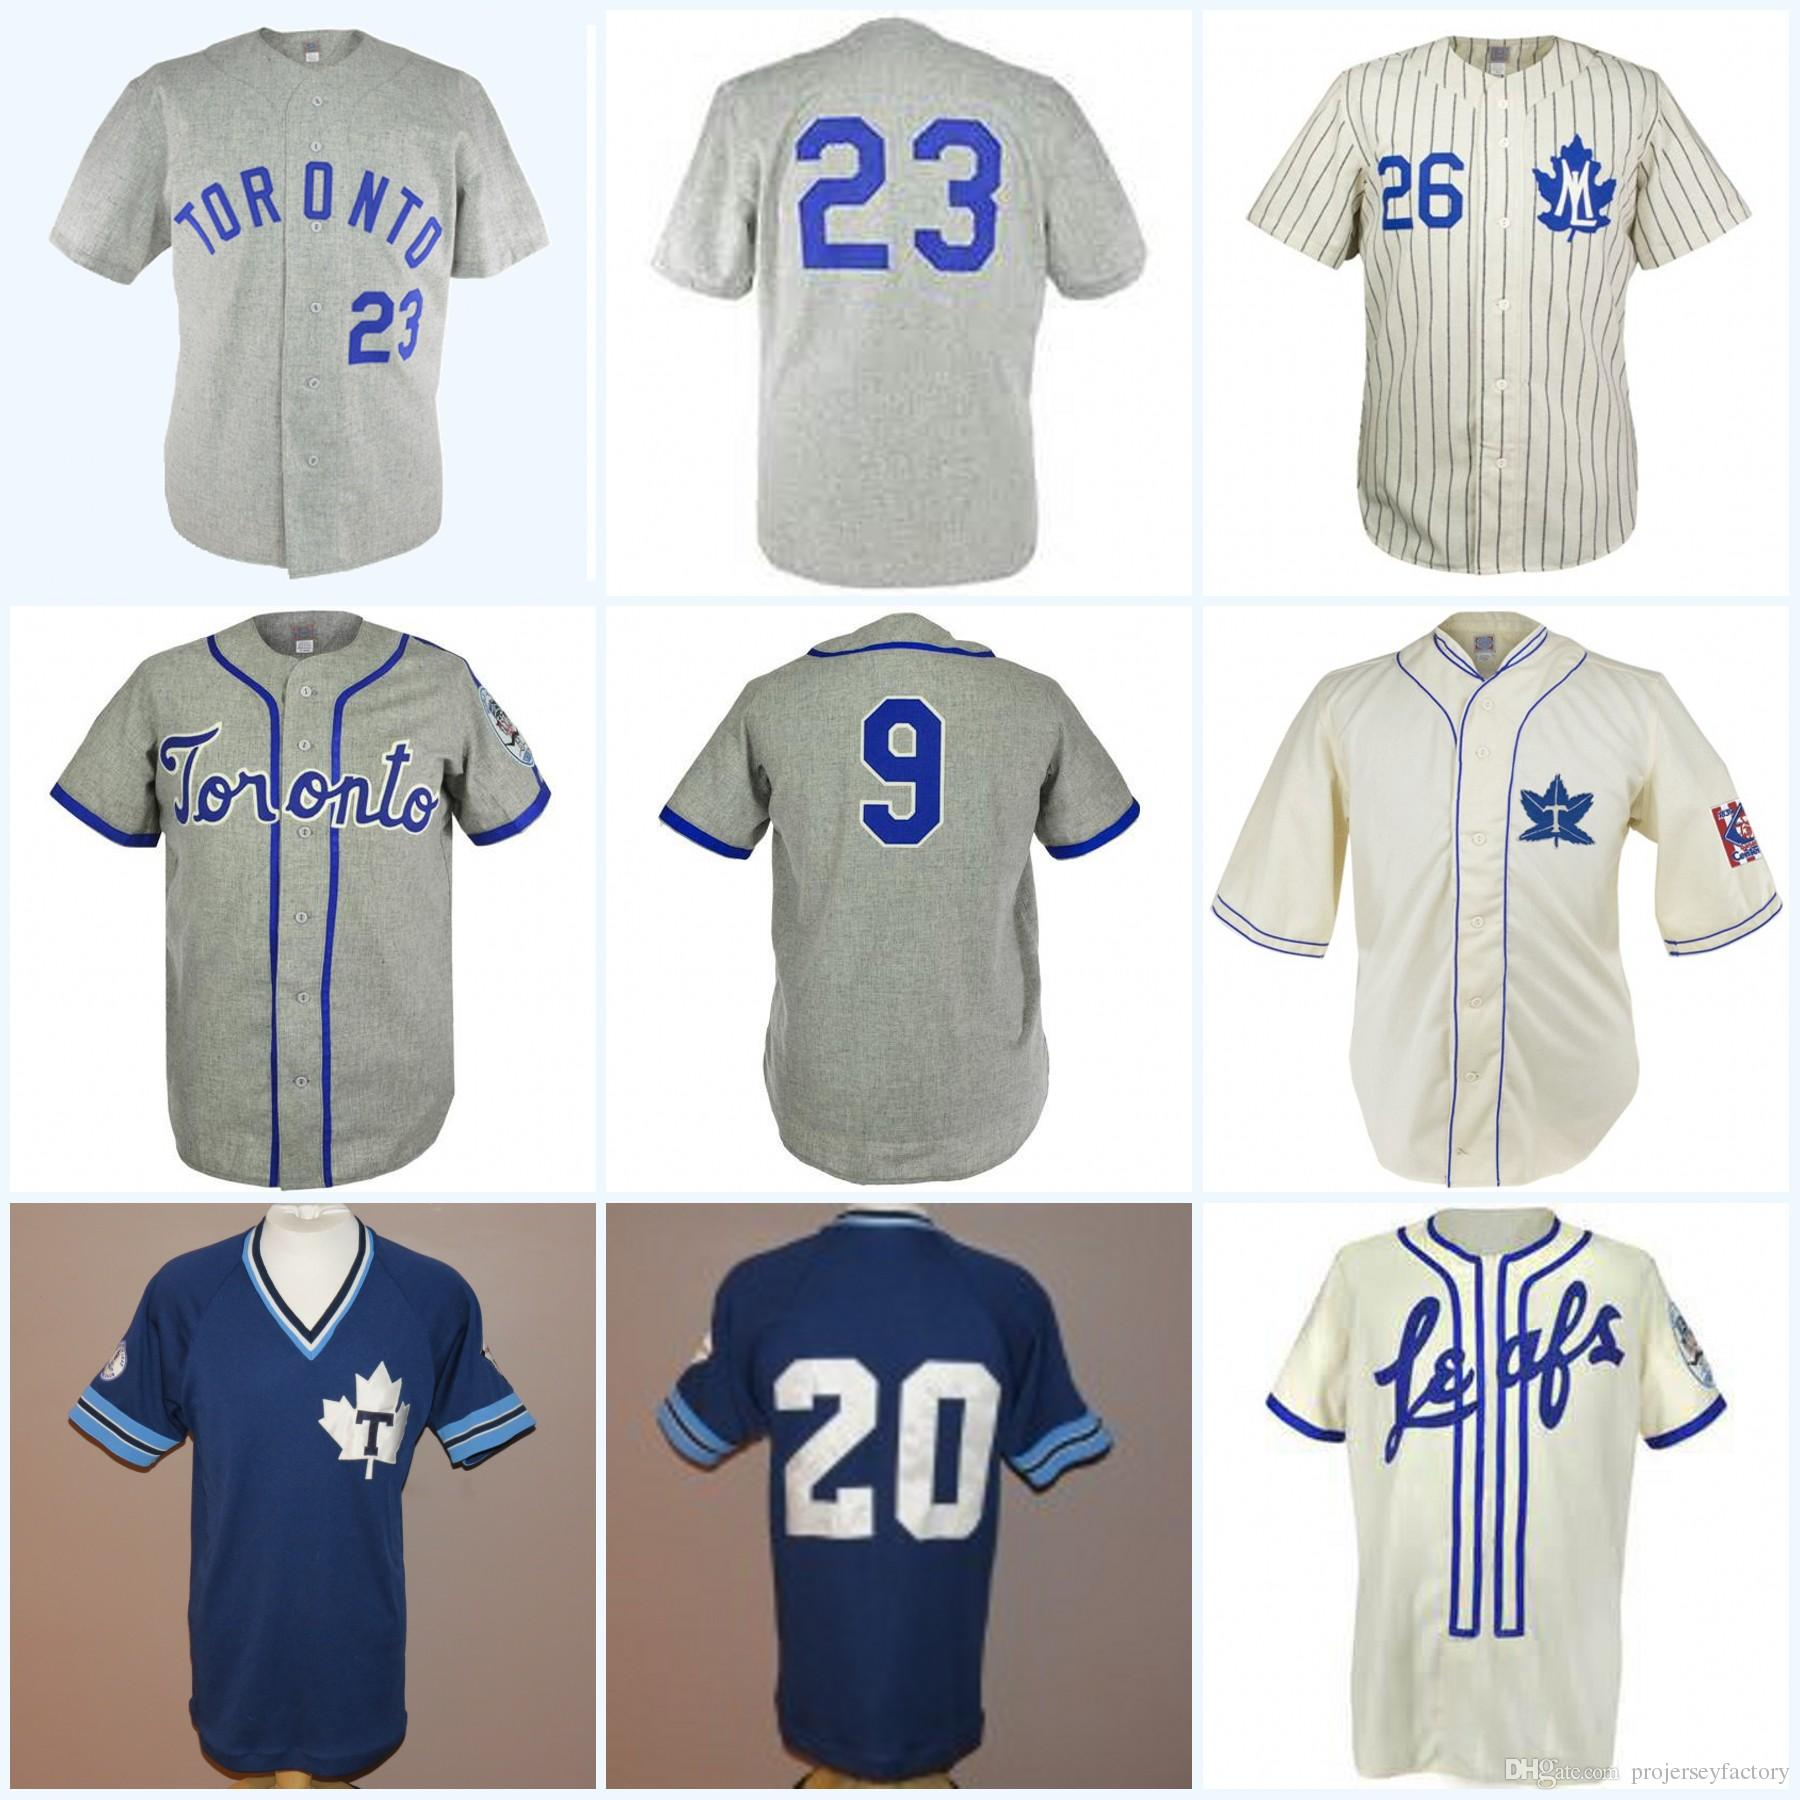 cae147eb4 2019 Toronto Maple Leafs 1939 Home Jersey Movie Baseball Jersey 100%  Stitched Name   Number   Logos For Mens Womens Youth From Projerseyfactory